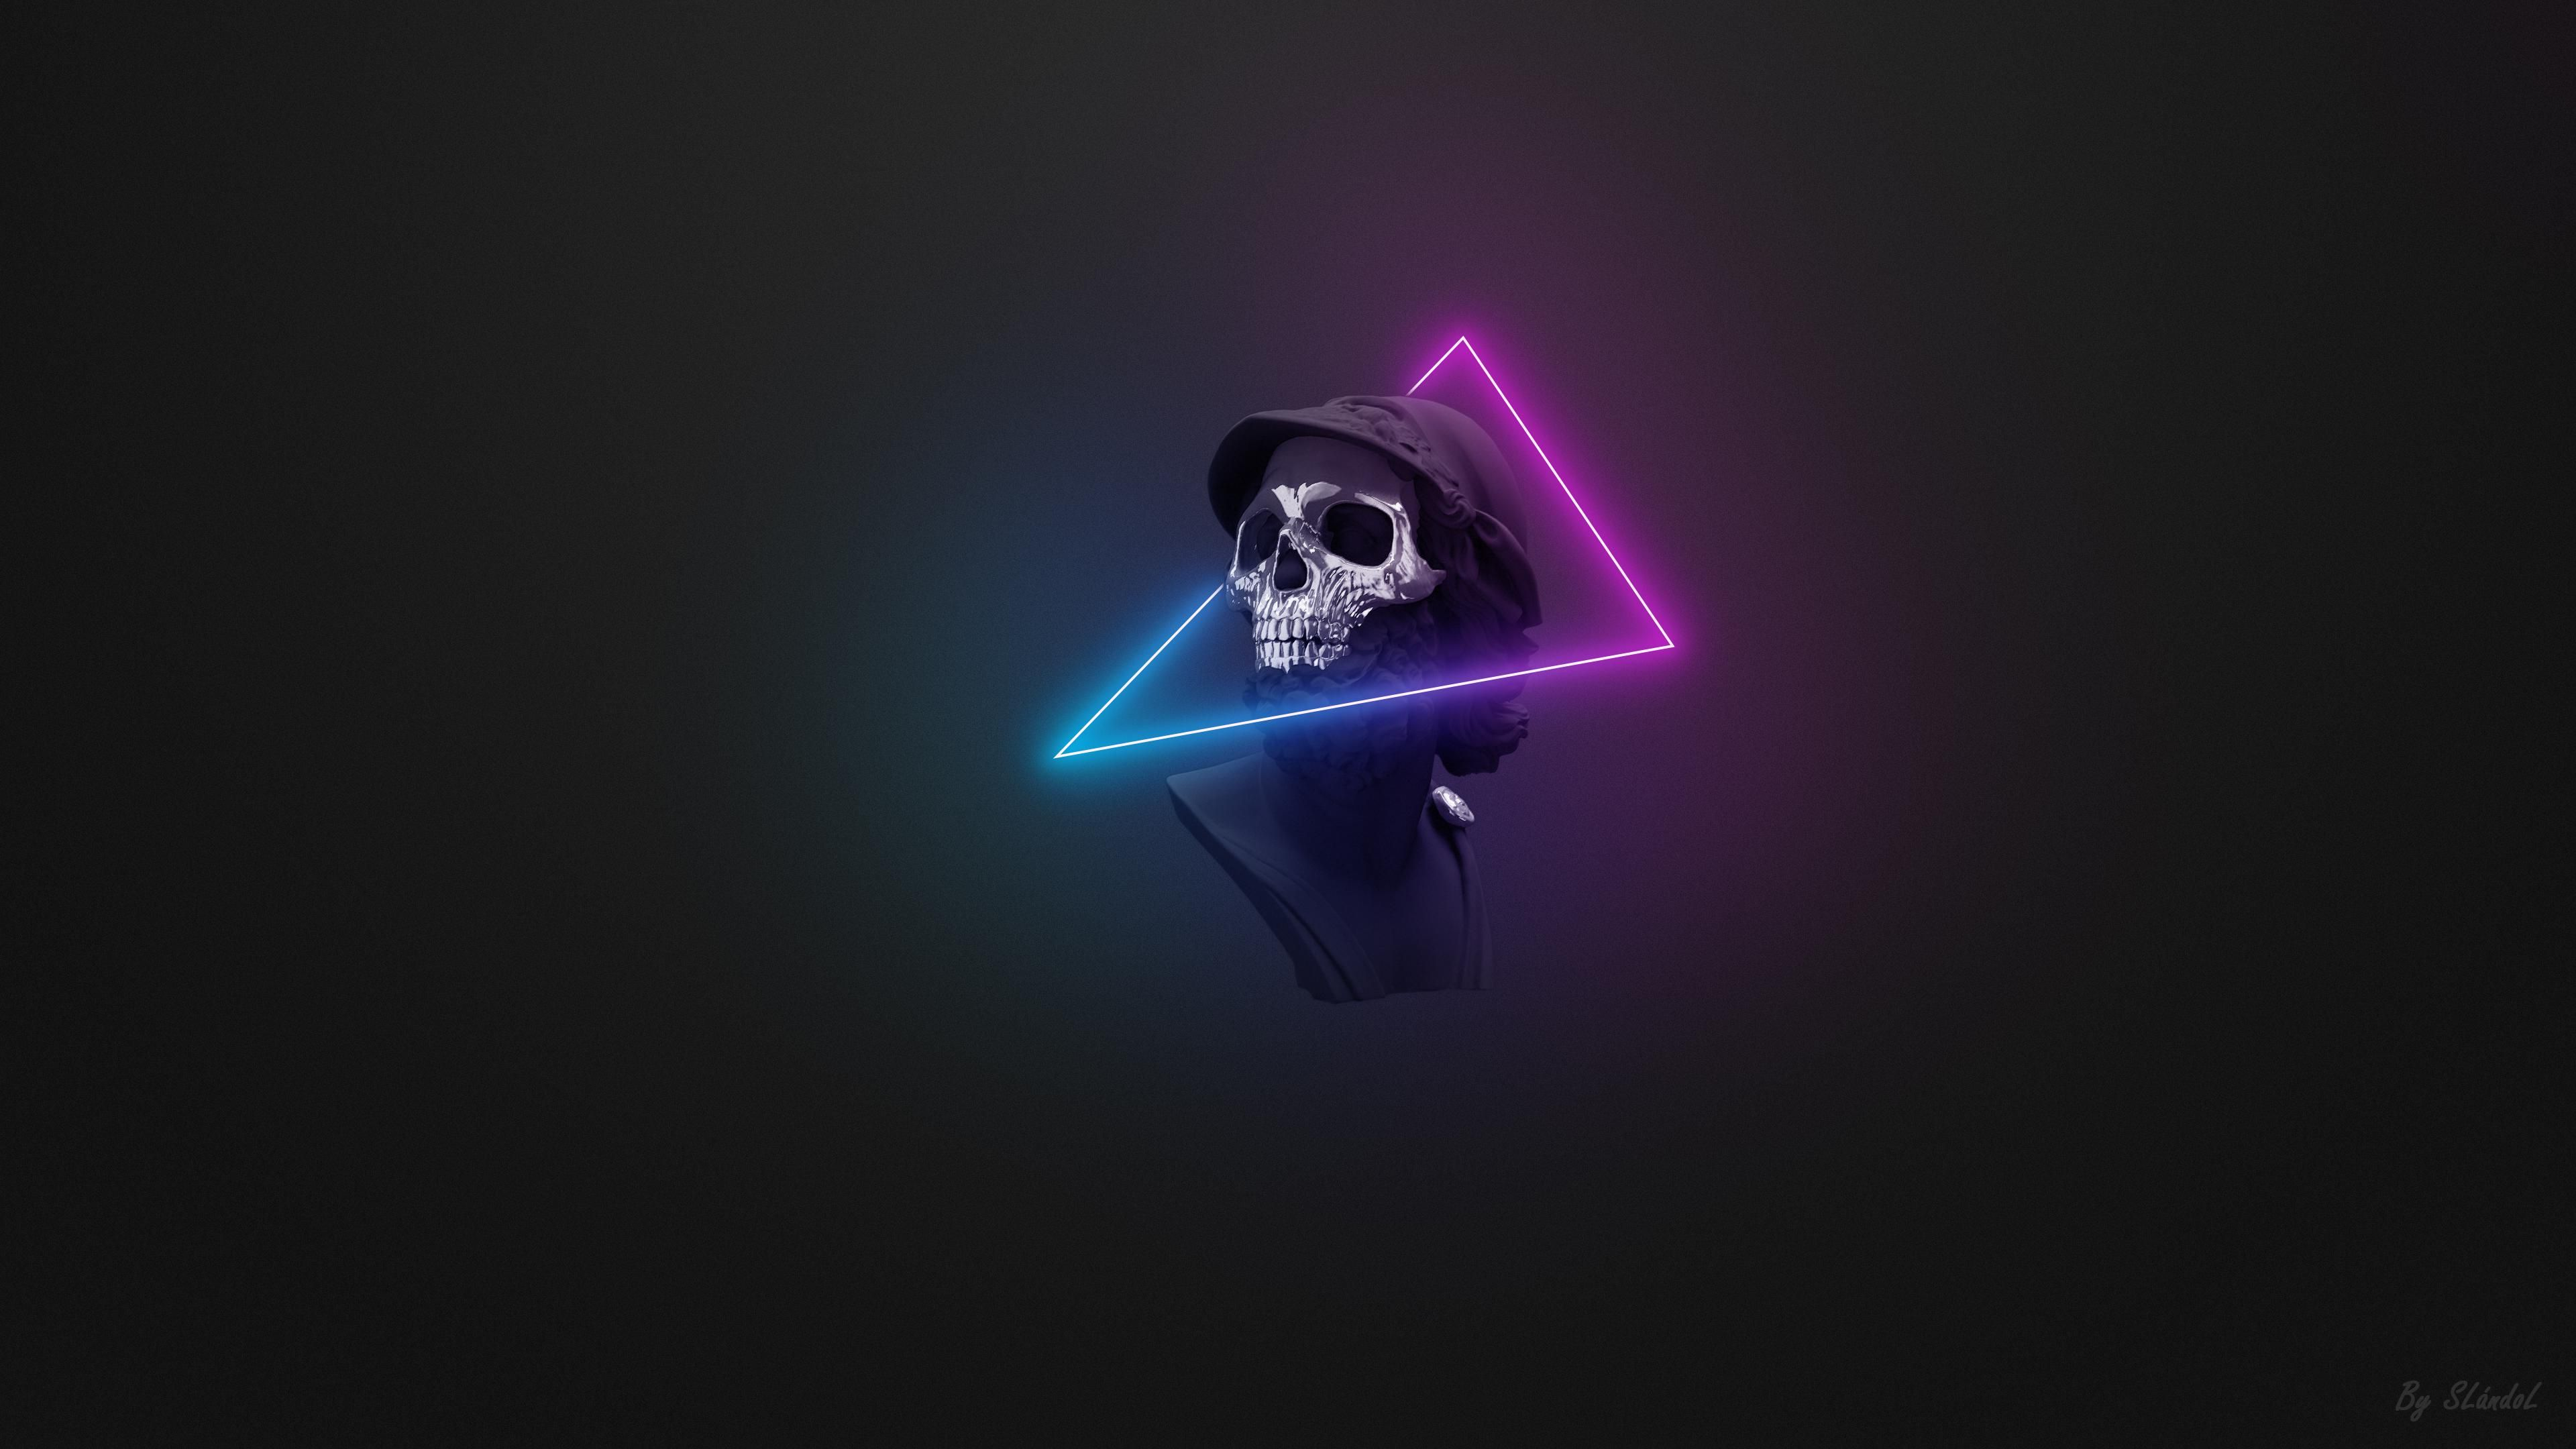 Wallpaper A Bust With A Skull Mask And Neon Lights Oc 4k Skull Wallpaper Graffiti Wallpaper Iphone Wallpaper